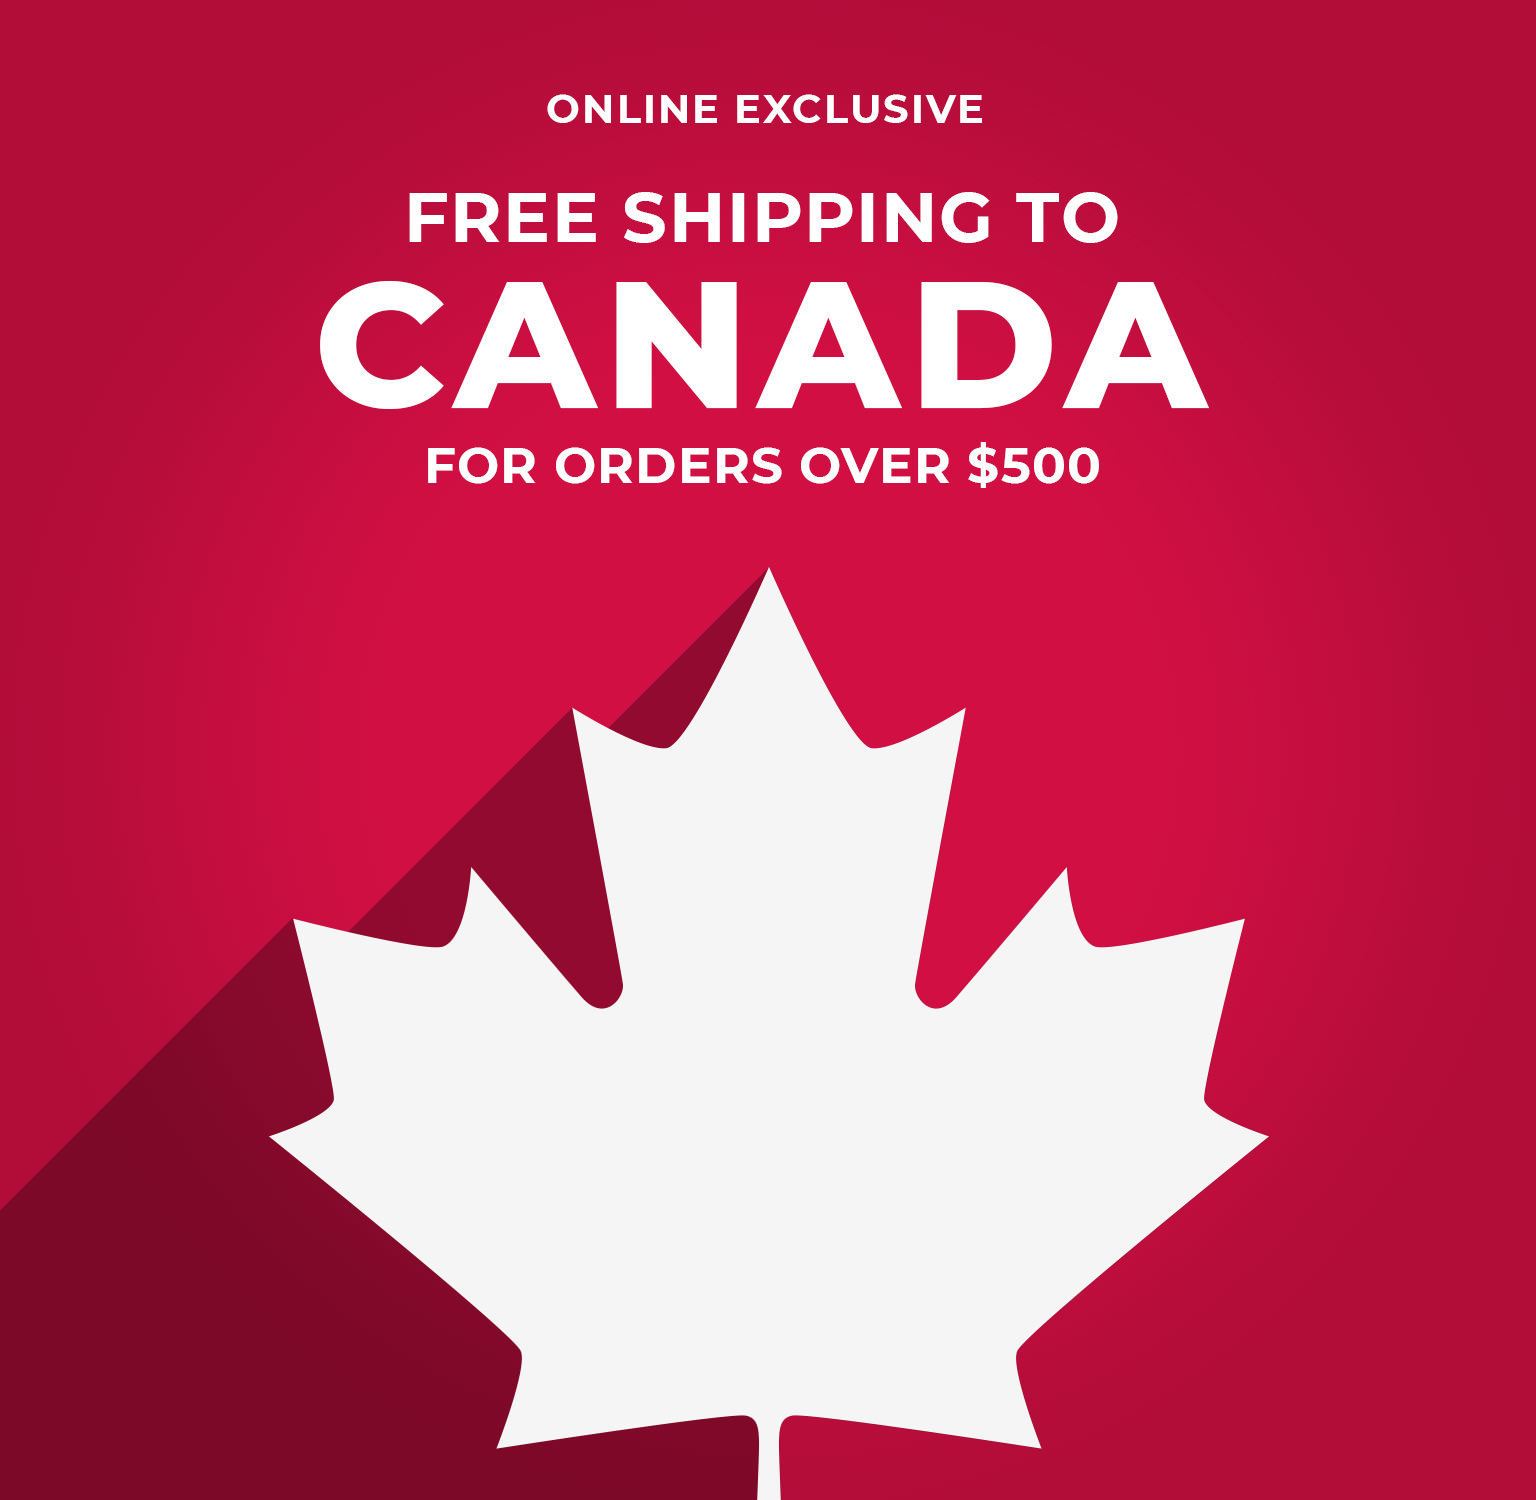 Online exclusive free shipping to canada for orders over $500